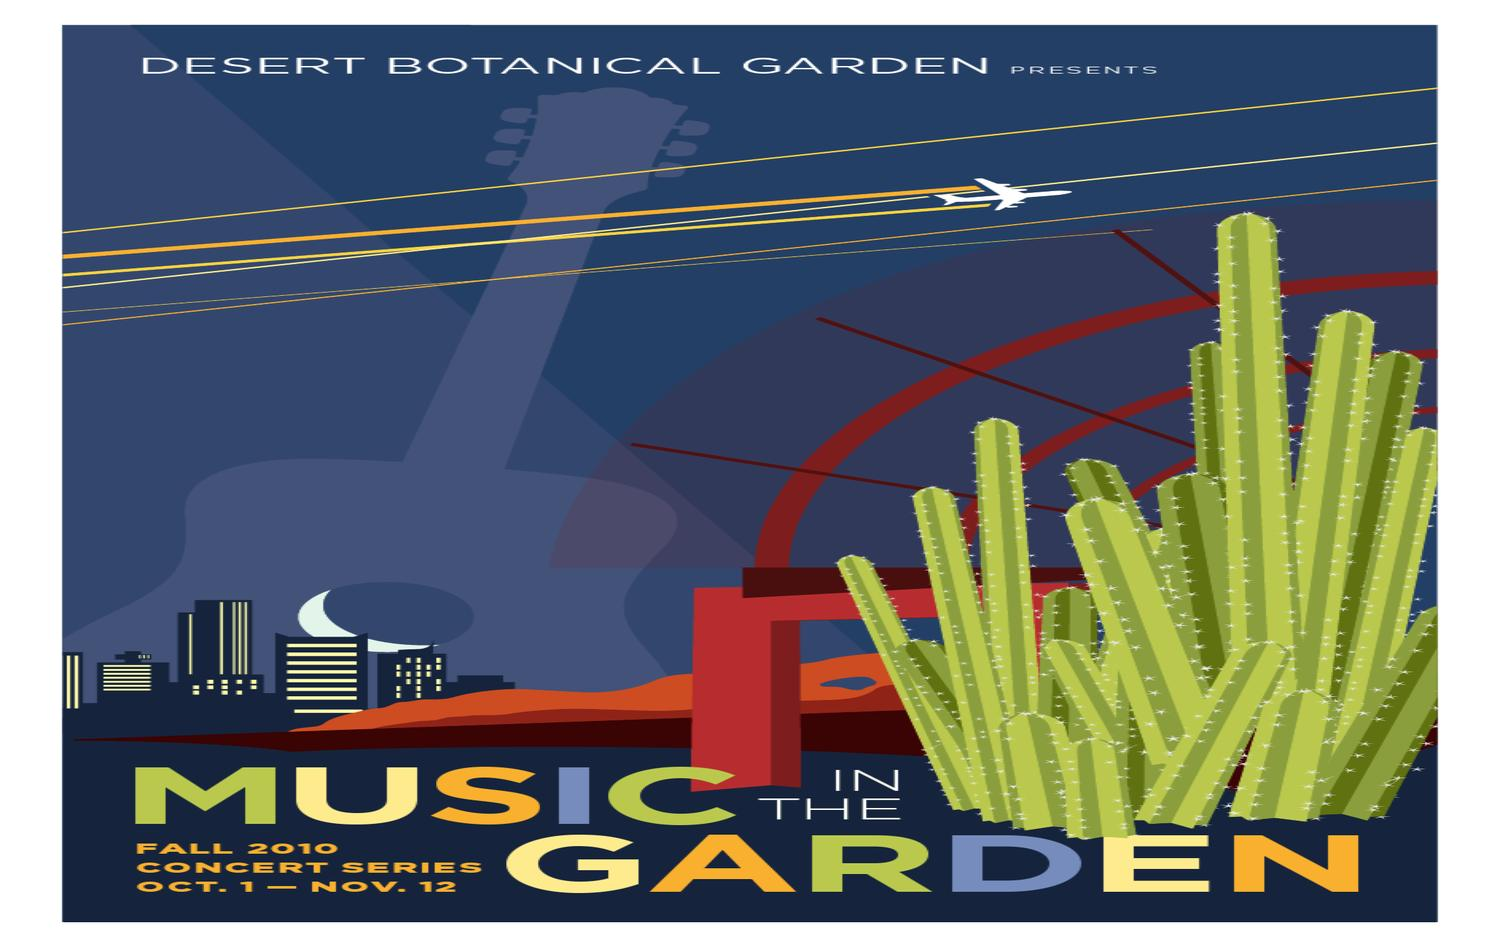 Music in the garden fall concert series by desert botanical garden issuu for Botanical gardens concert series